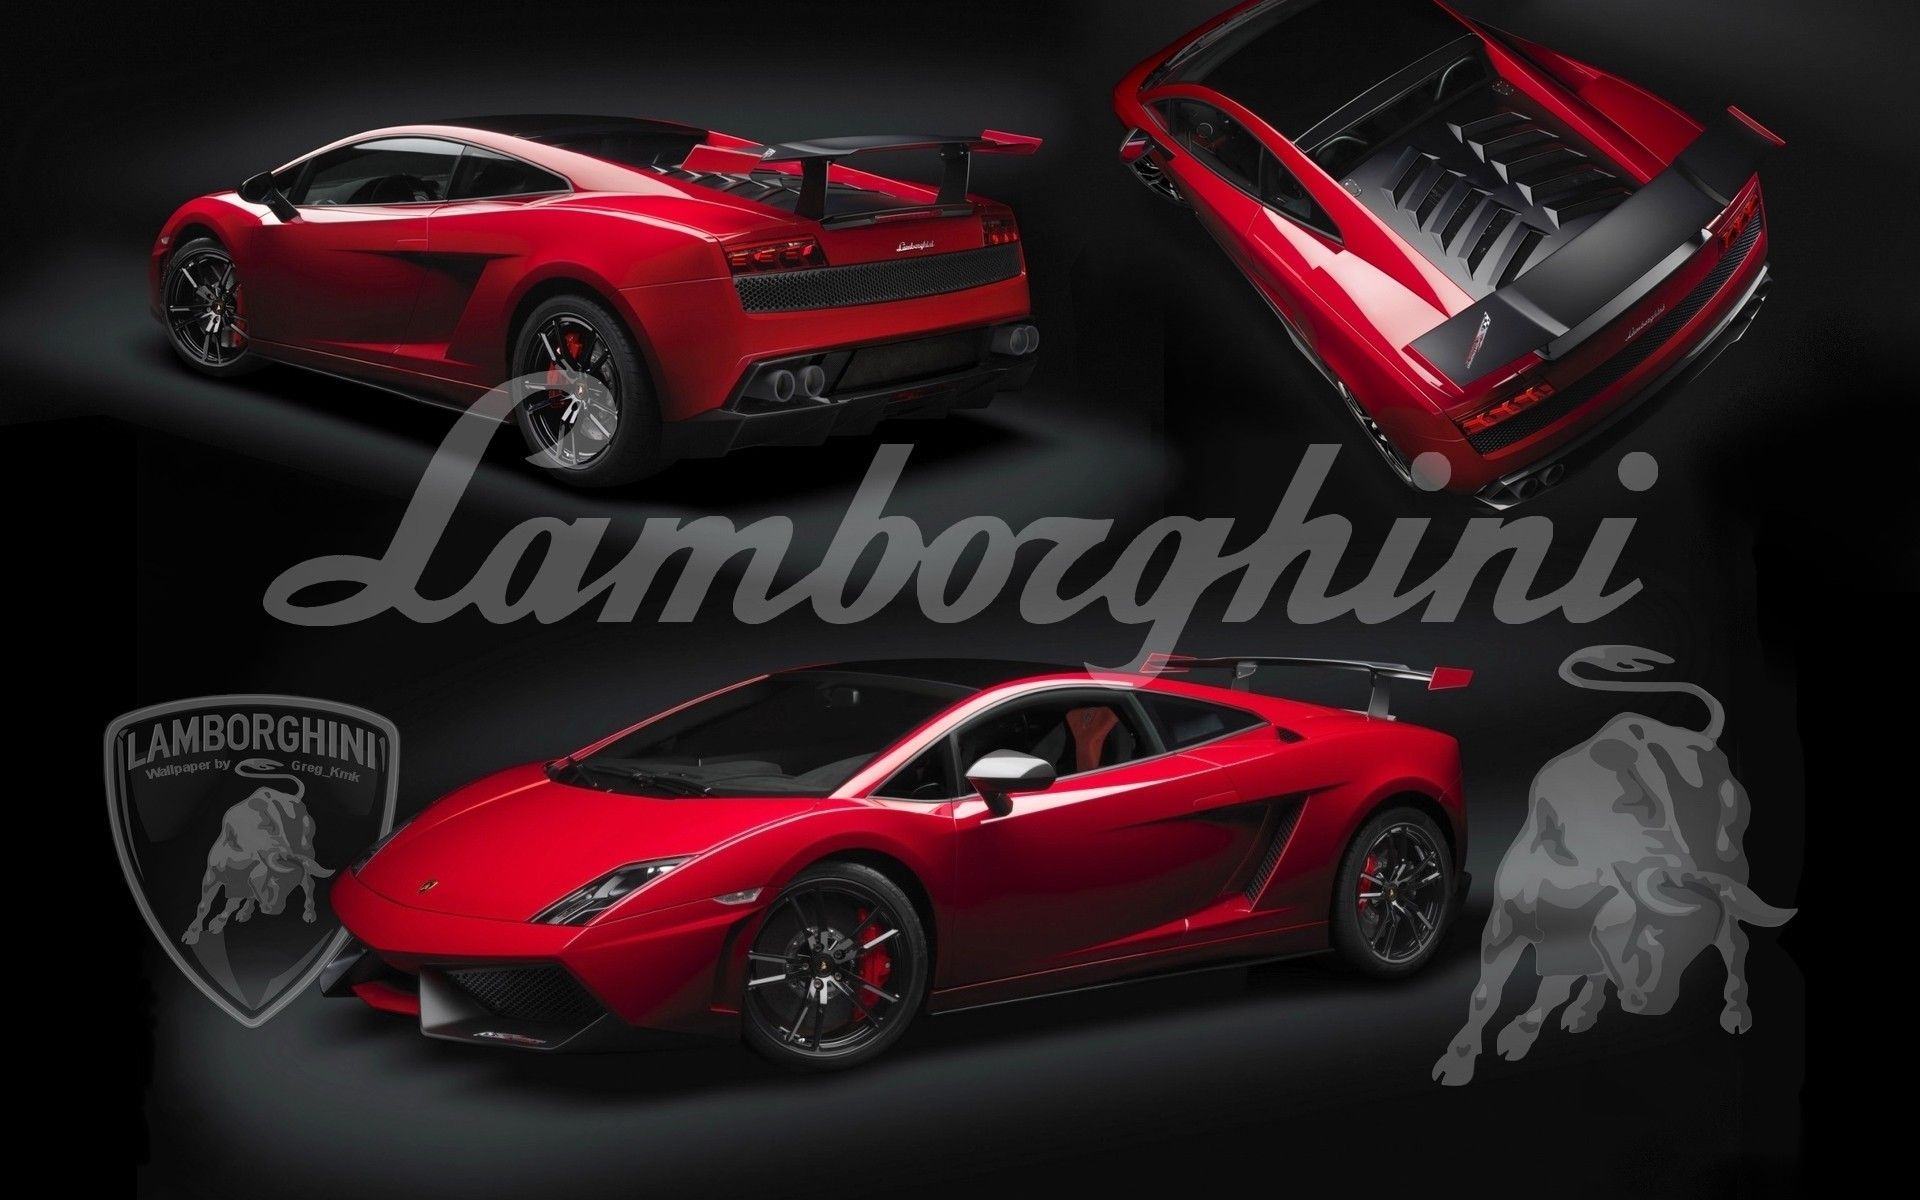 Lamborghini Gallardo Wallpapers HD Wallpaper